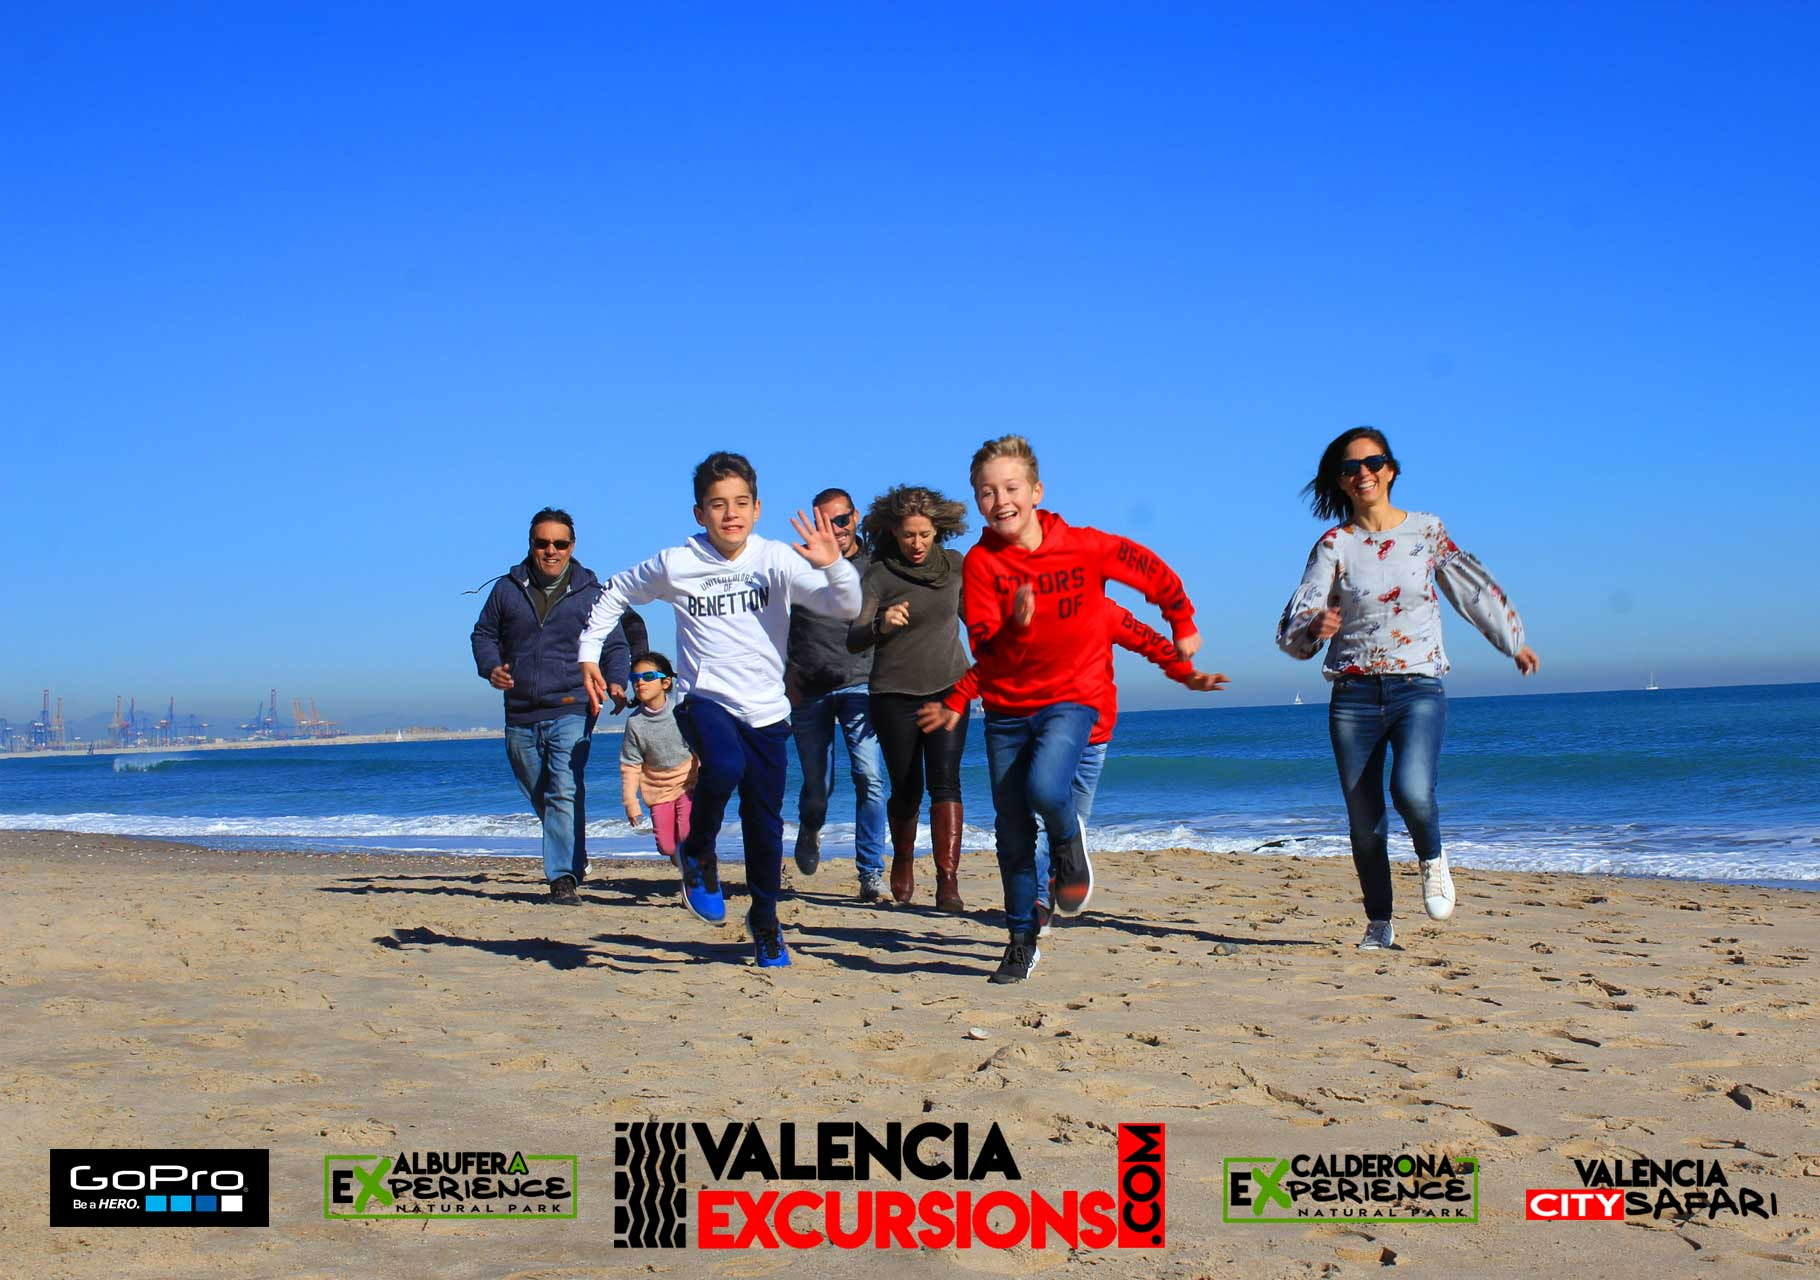 Beach Excursion in Valencia with Jeeps and boat trip Included in Albufera Natural Park